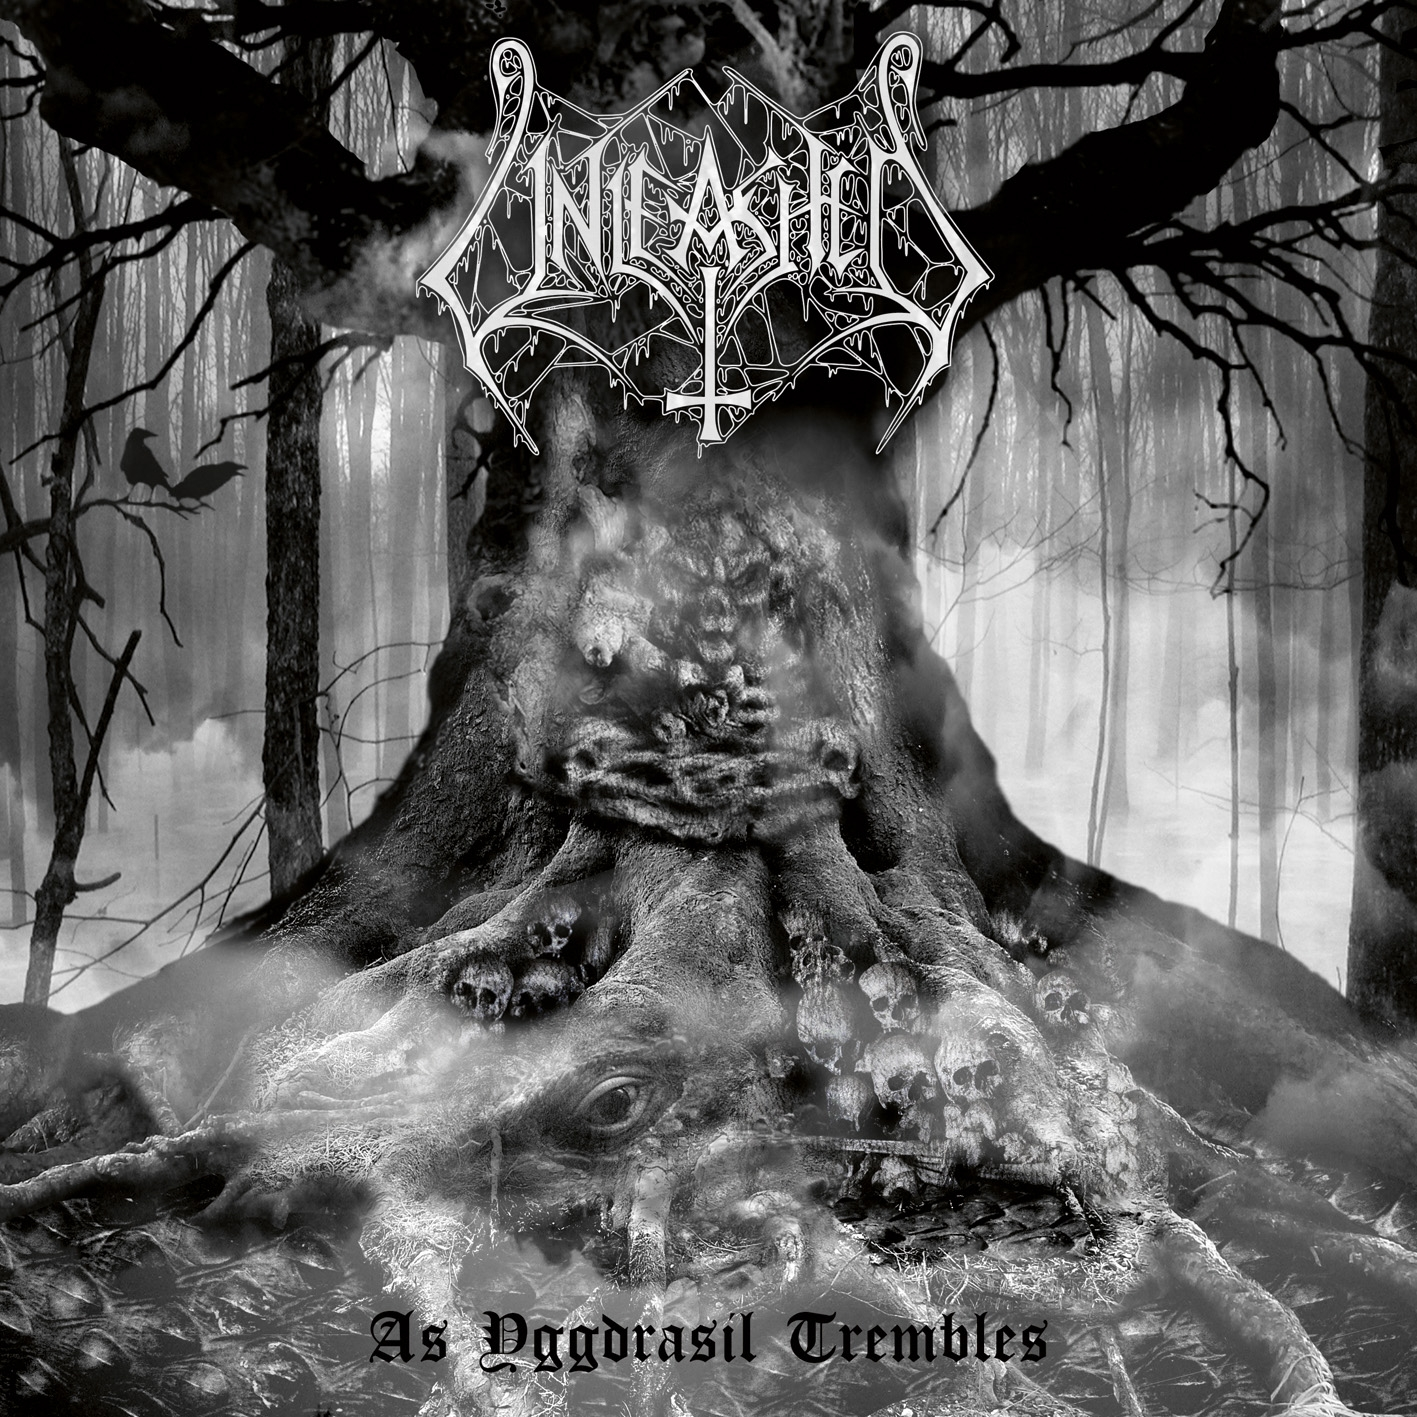 Unleashed – As Yggdrasil Trembles Review